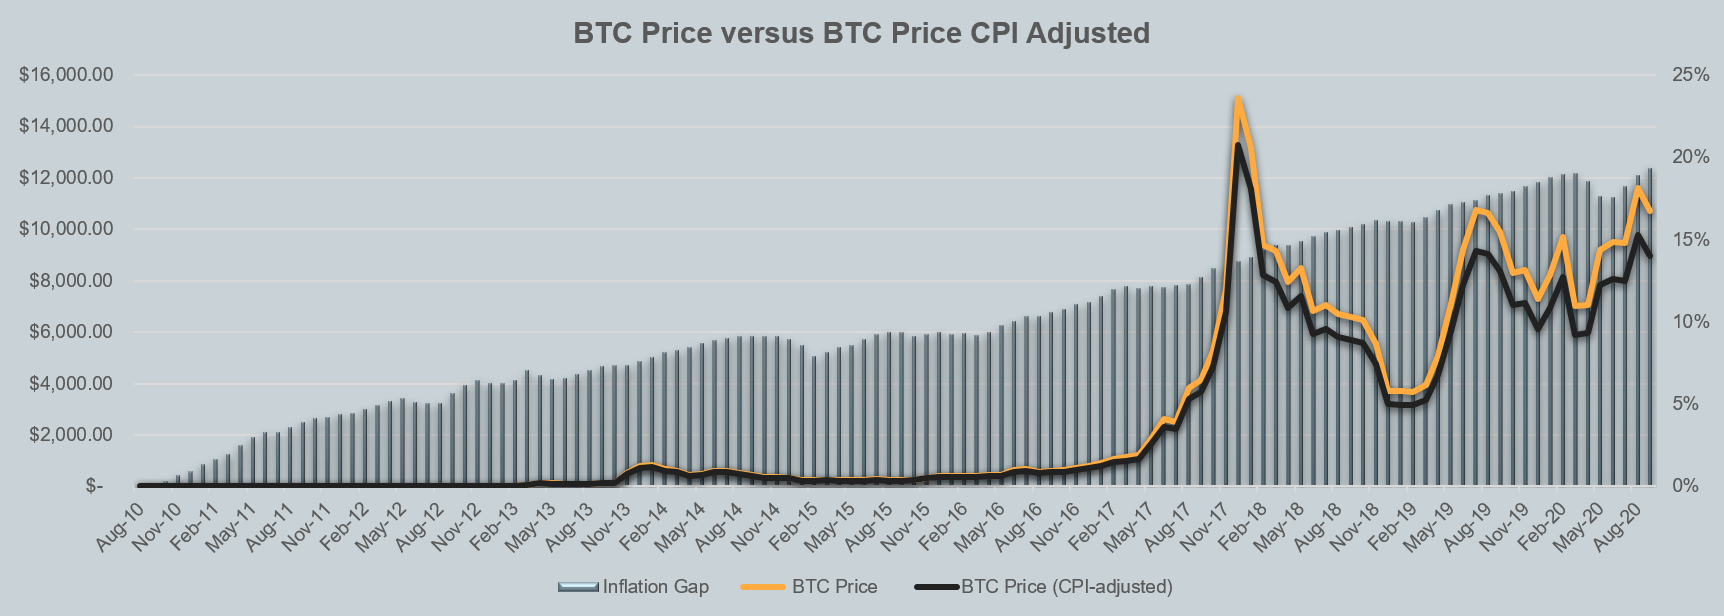 Fiat inflation has cost Bitcoin hodlers 20% over the past decade